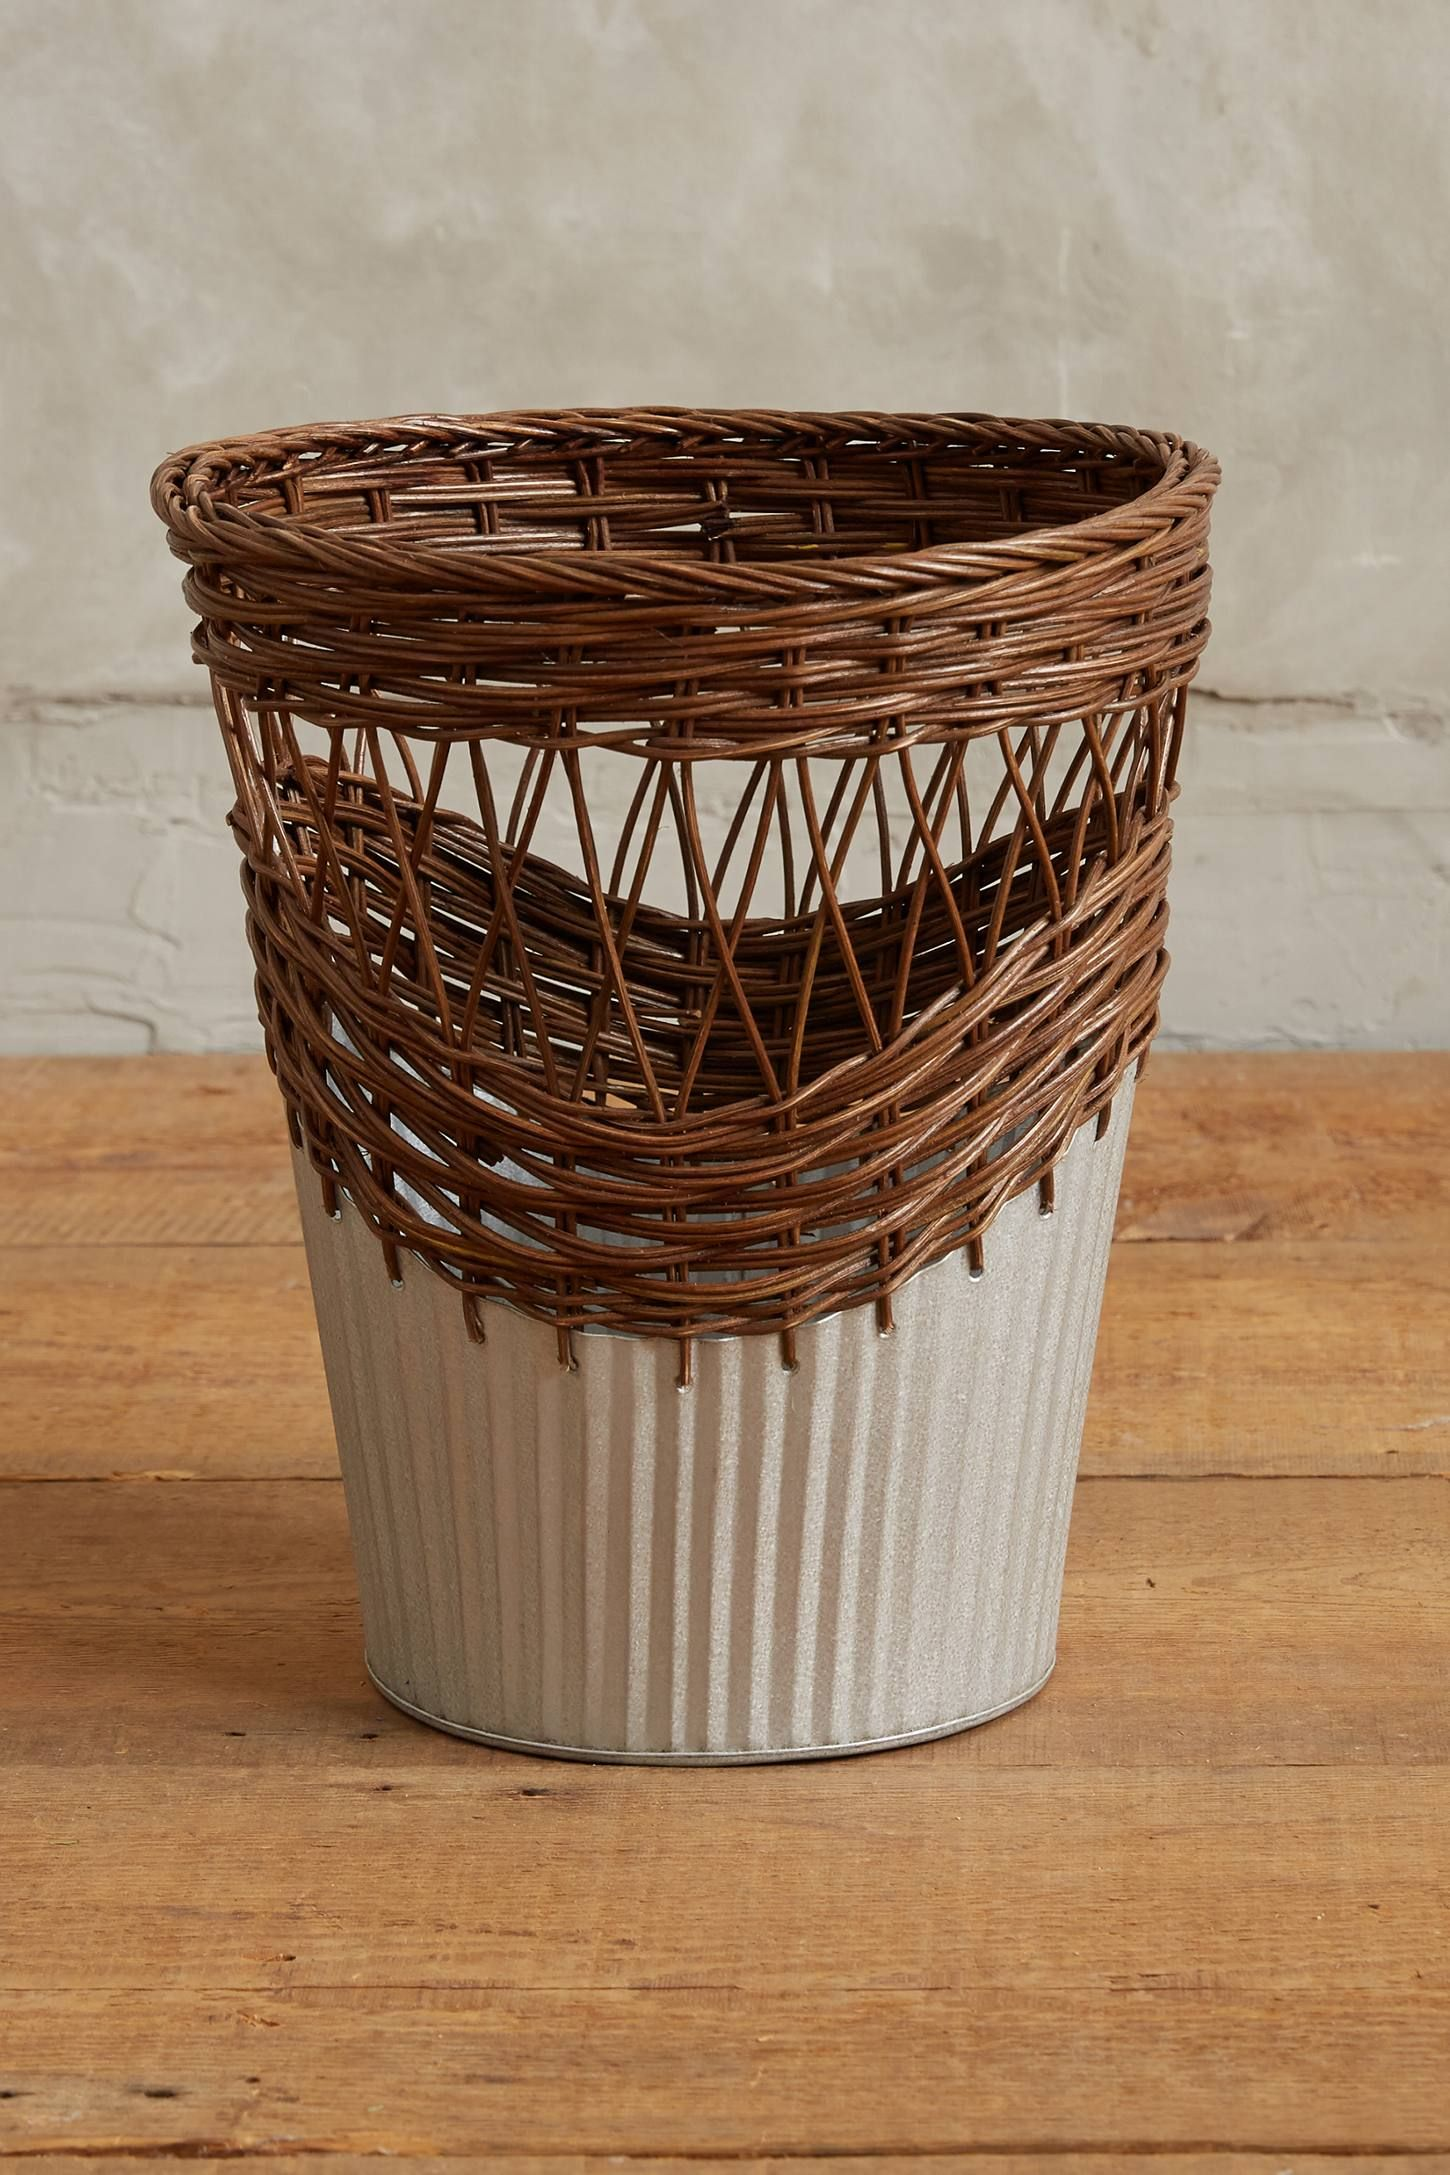 Wrapped rattan waste basket boho bathroom rattan basket baskets home accents decorative